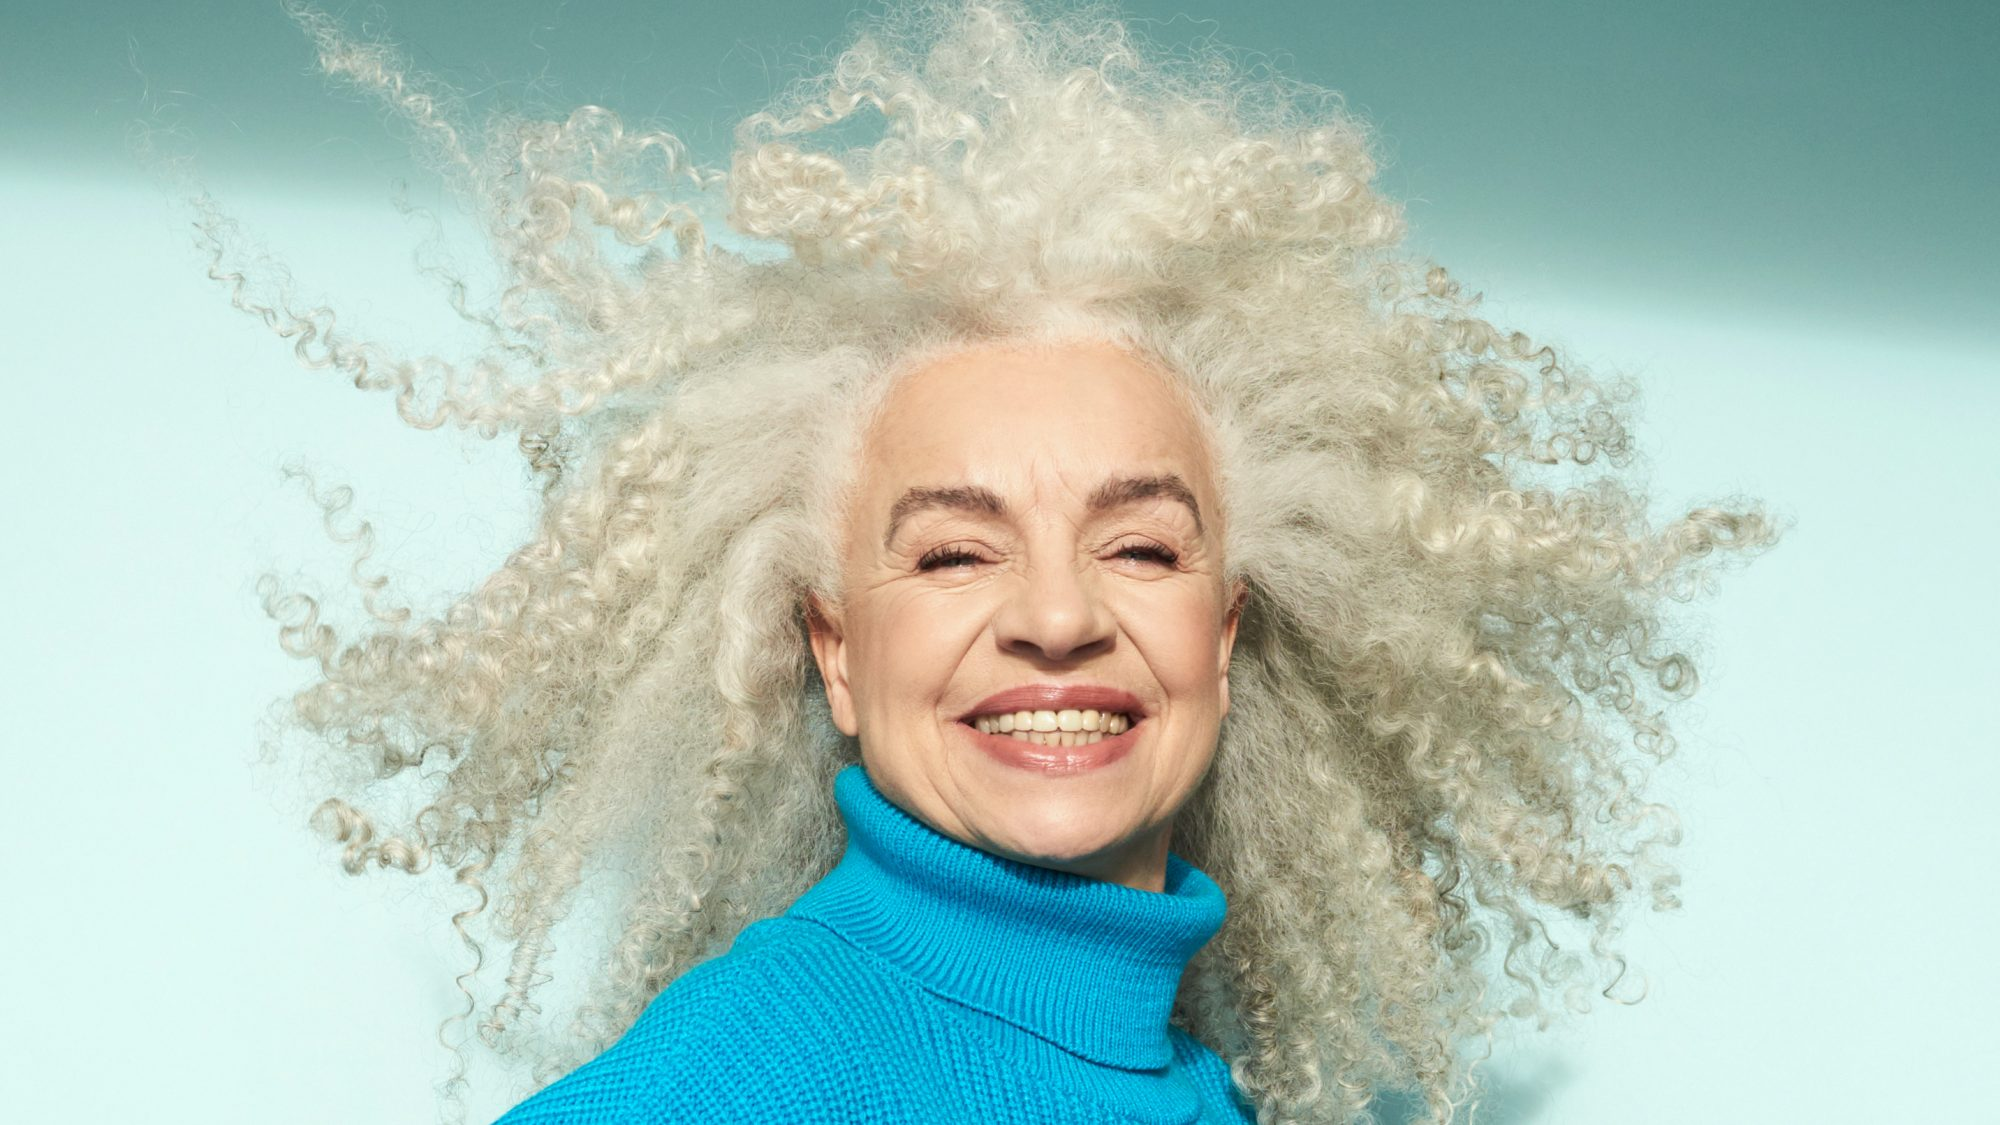 products-for-gray-hair: older woman with beautiful gray hair